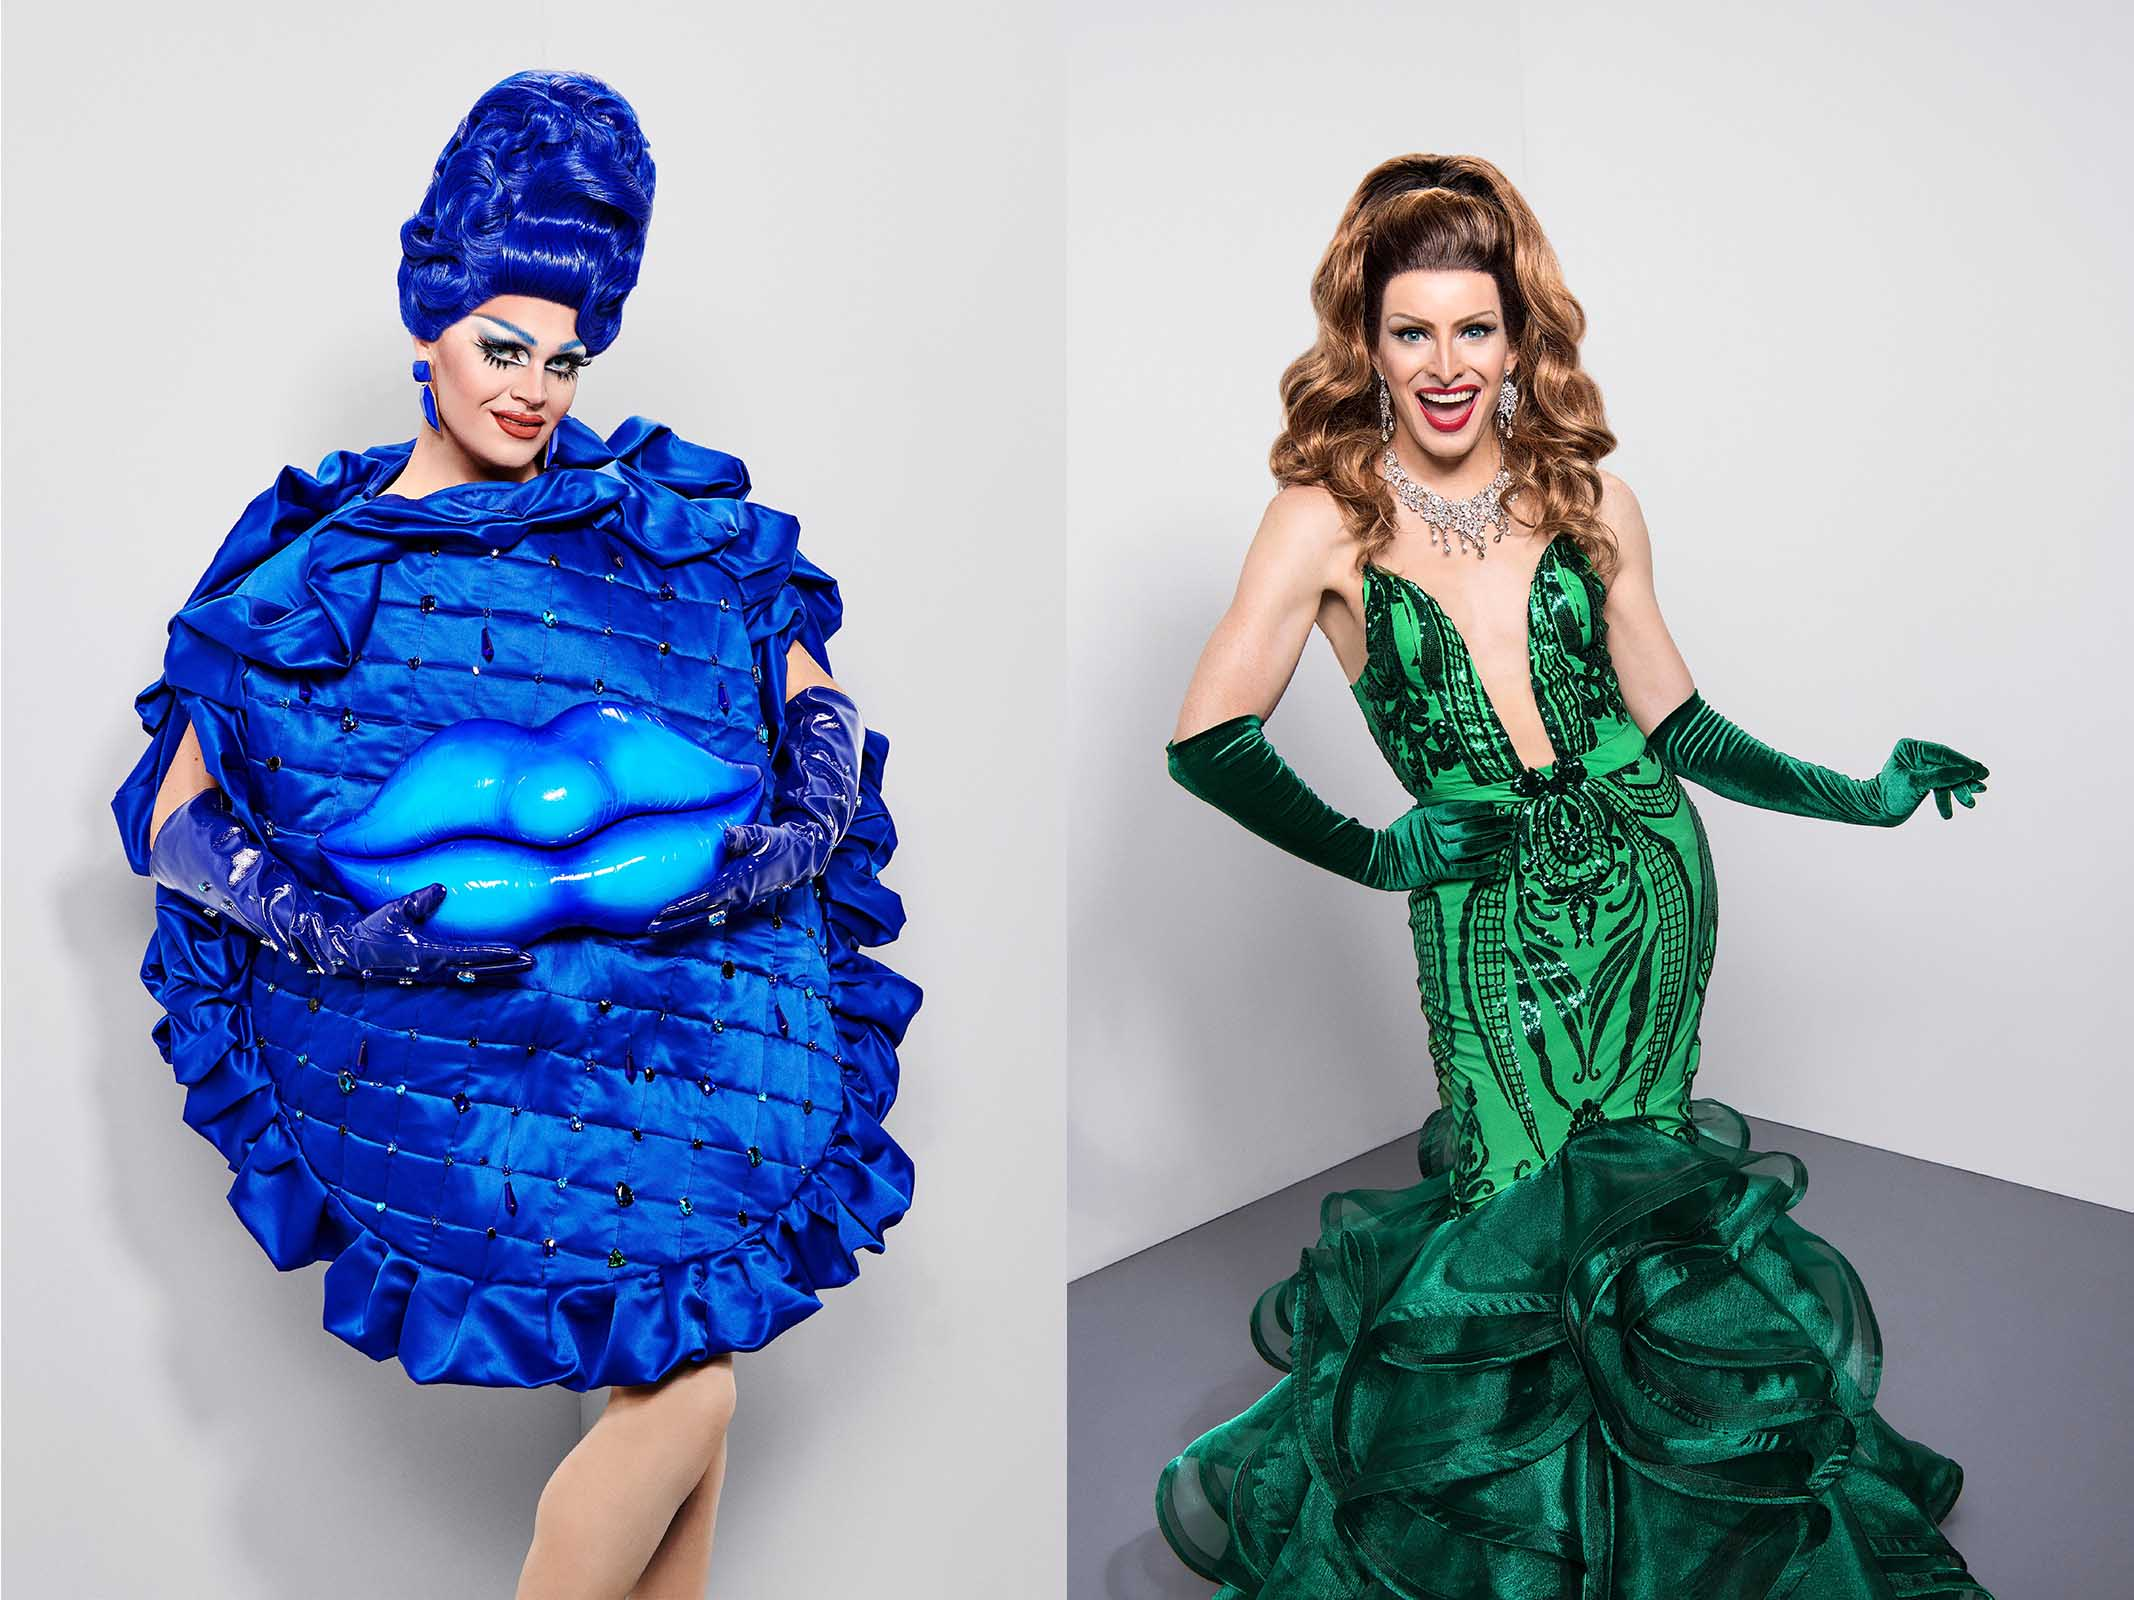 With so many queens already gone, the drama on 'Drag Race UK' is only getting hotter. Here's the rivalries we think are worth watching.